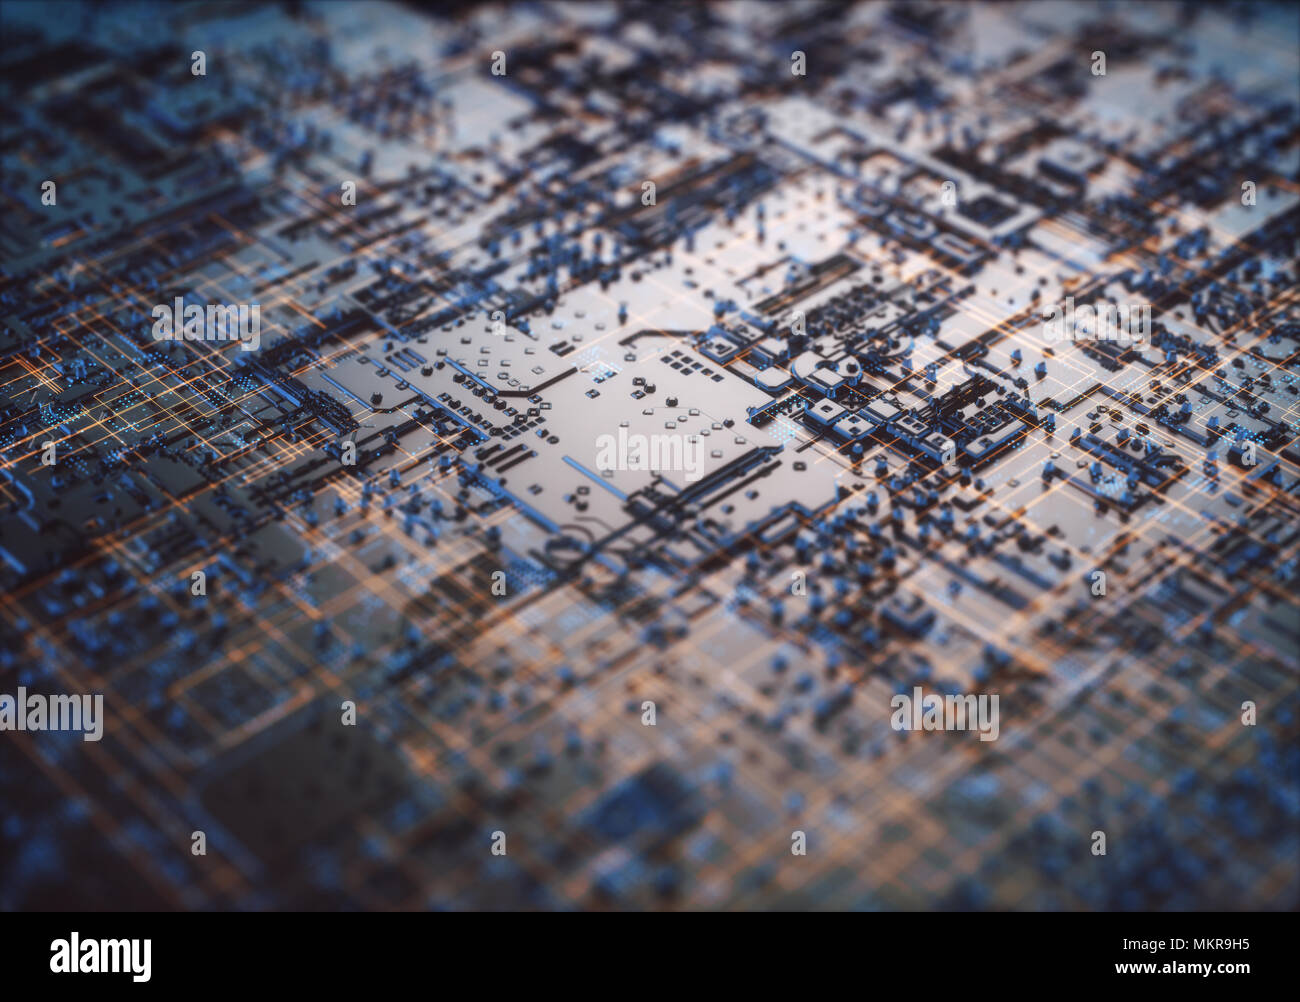 3D illustration. Abstract 3D structure for use as background in technological theme. - Stock Image